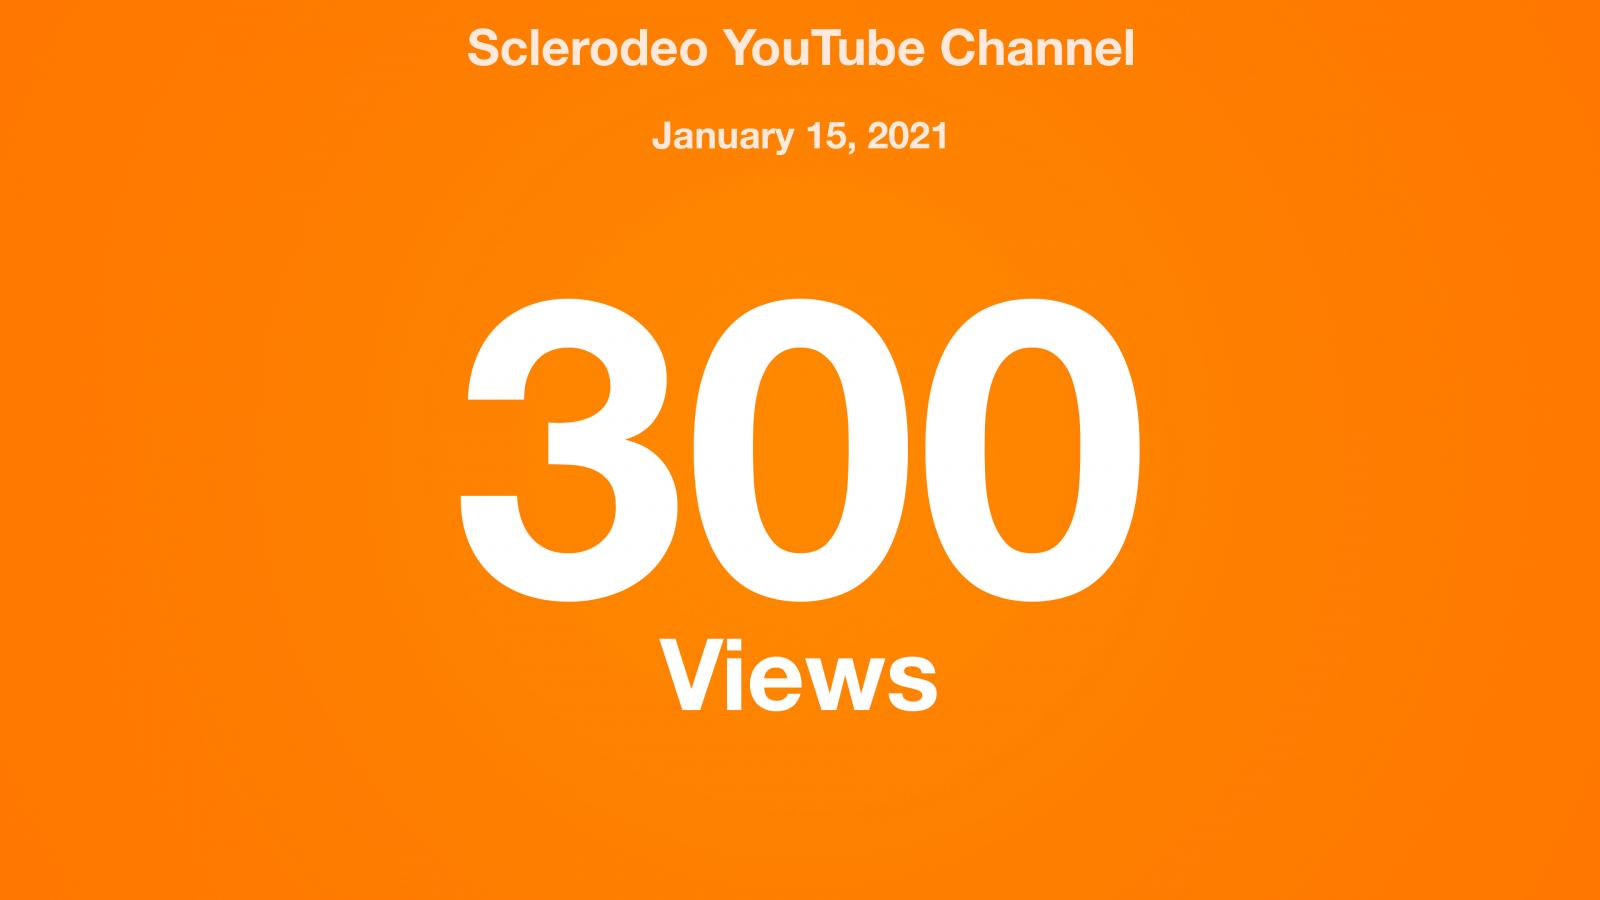 Sclerodeo YouTube Channel, January 15, 2021, 300 Views